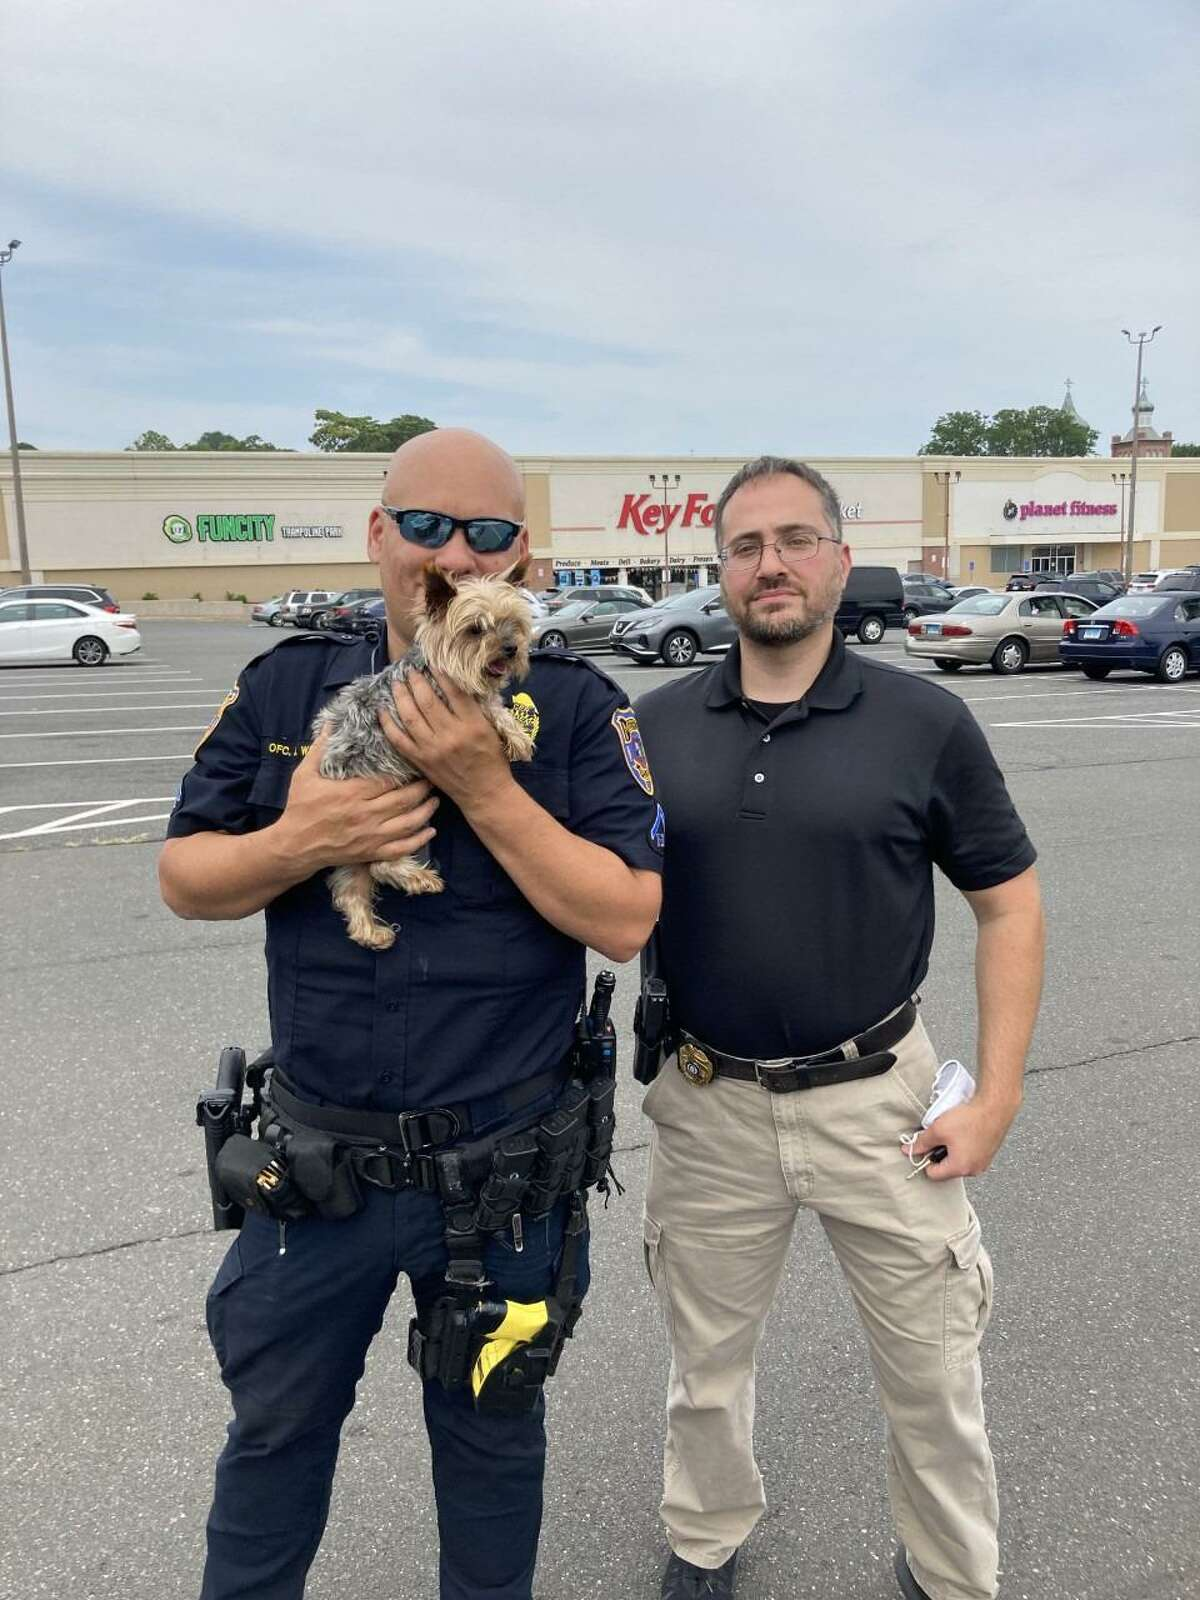 Cookie with Meriden, Conn., police after he was reunited with his owners. The dog was stolen out of his owners' yard on Aug. 4, 2021, before being listed online for sale. An undercover officer recovered the dog.